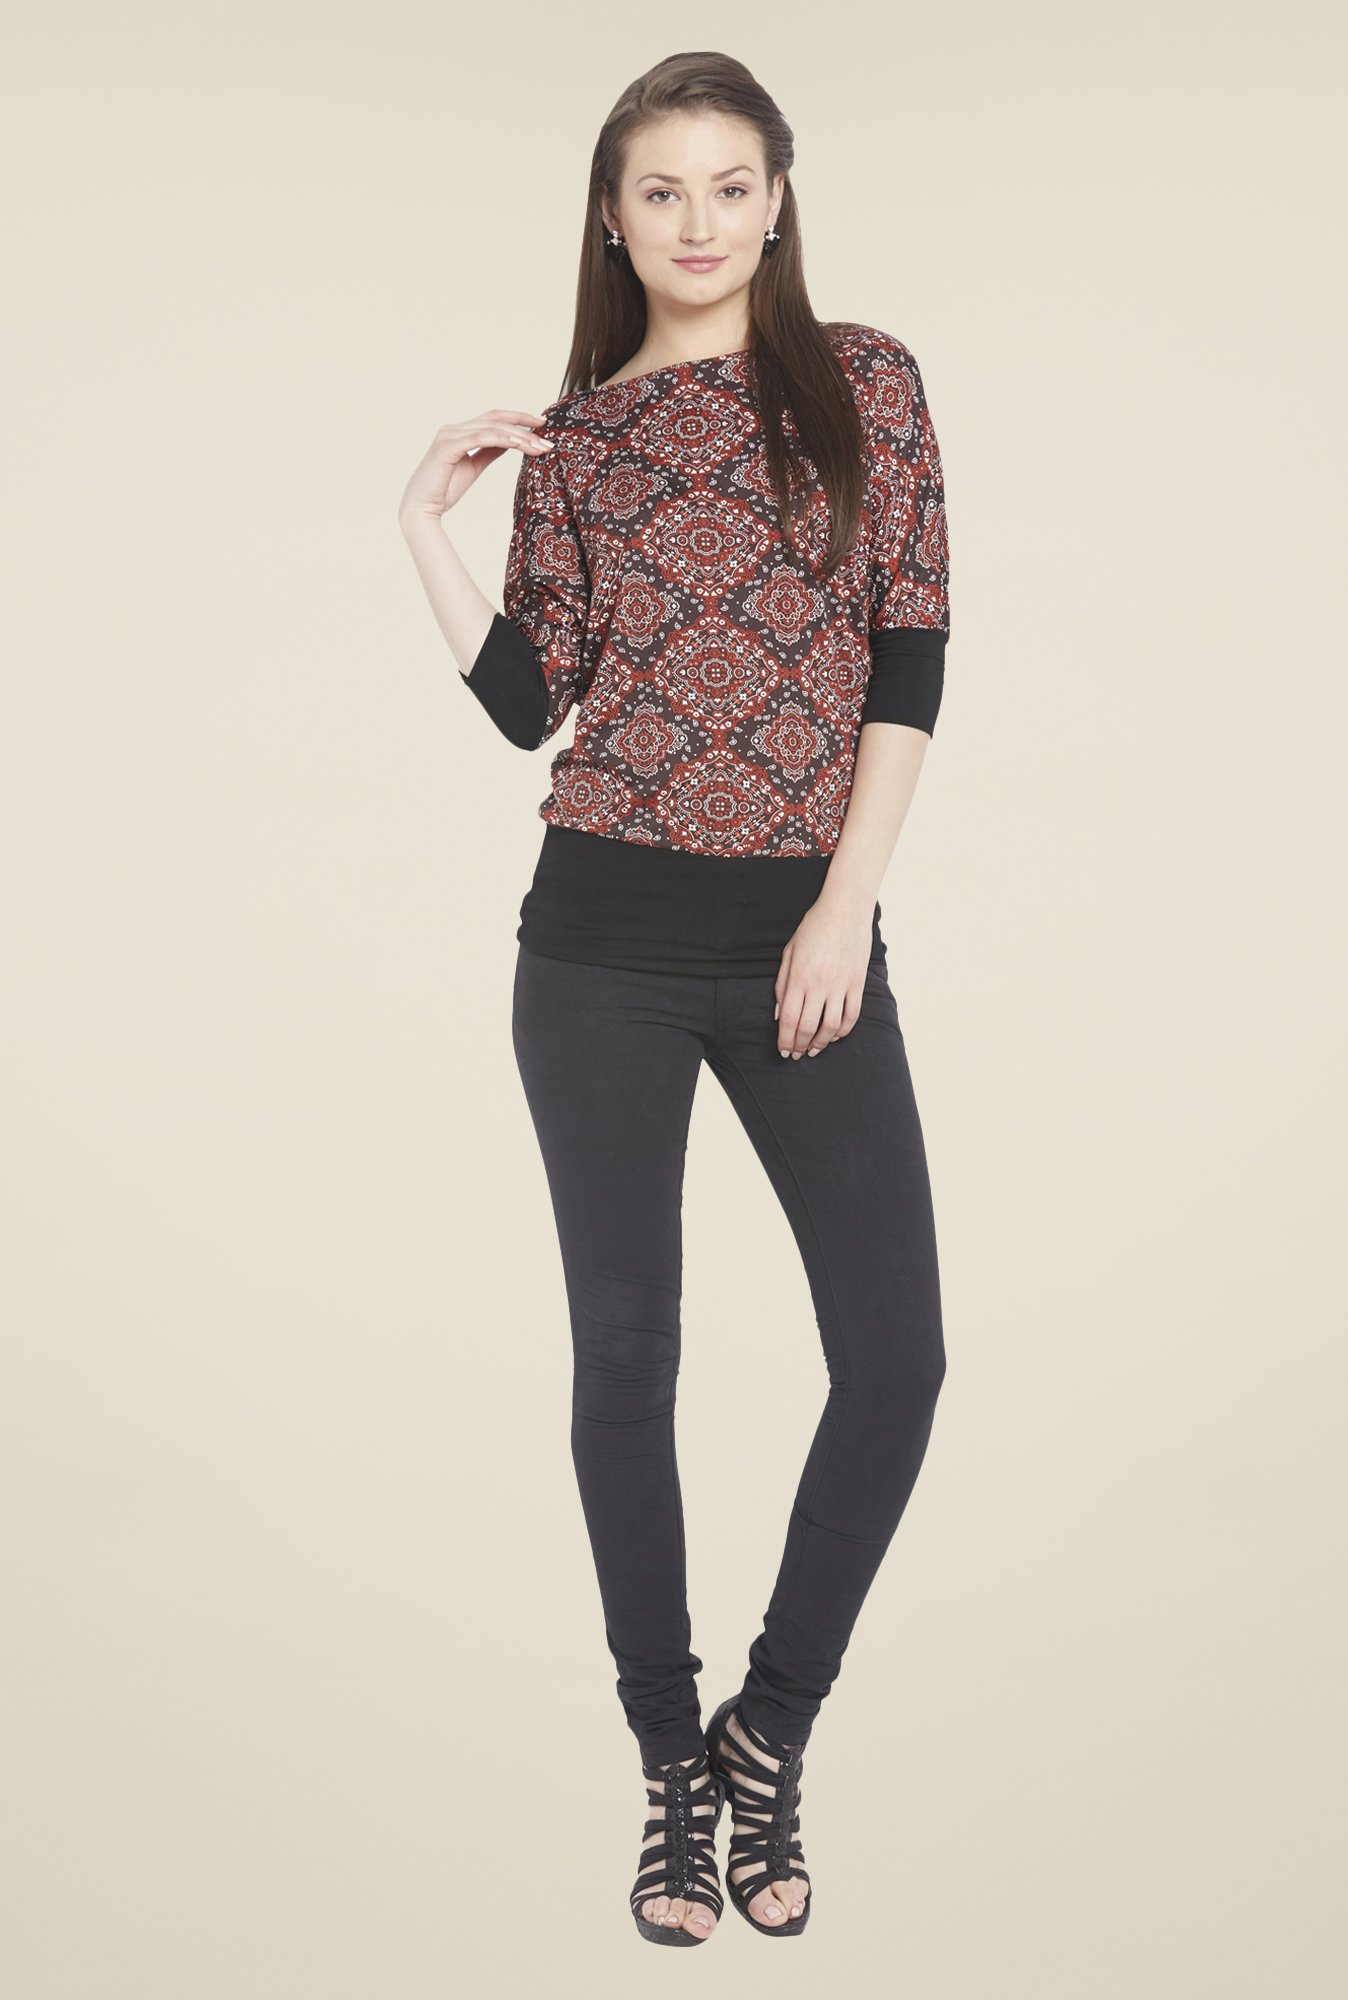 Globus Black Regular Fit Printed Top